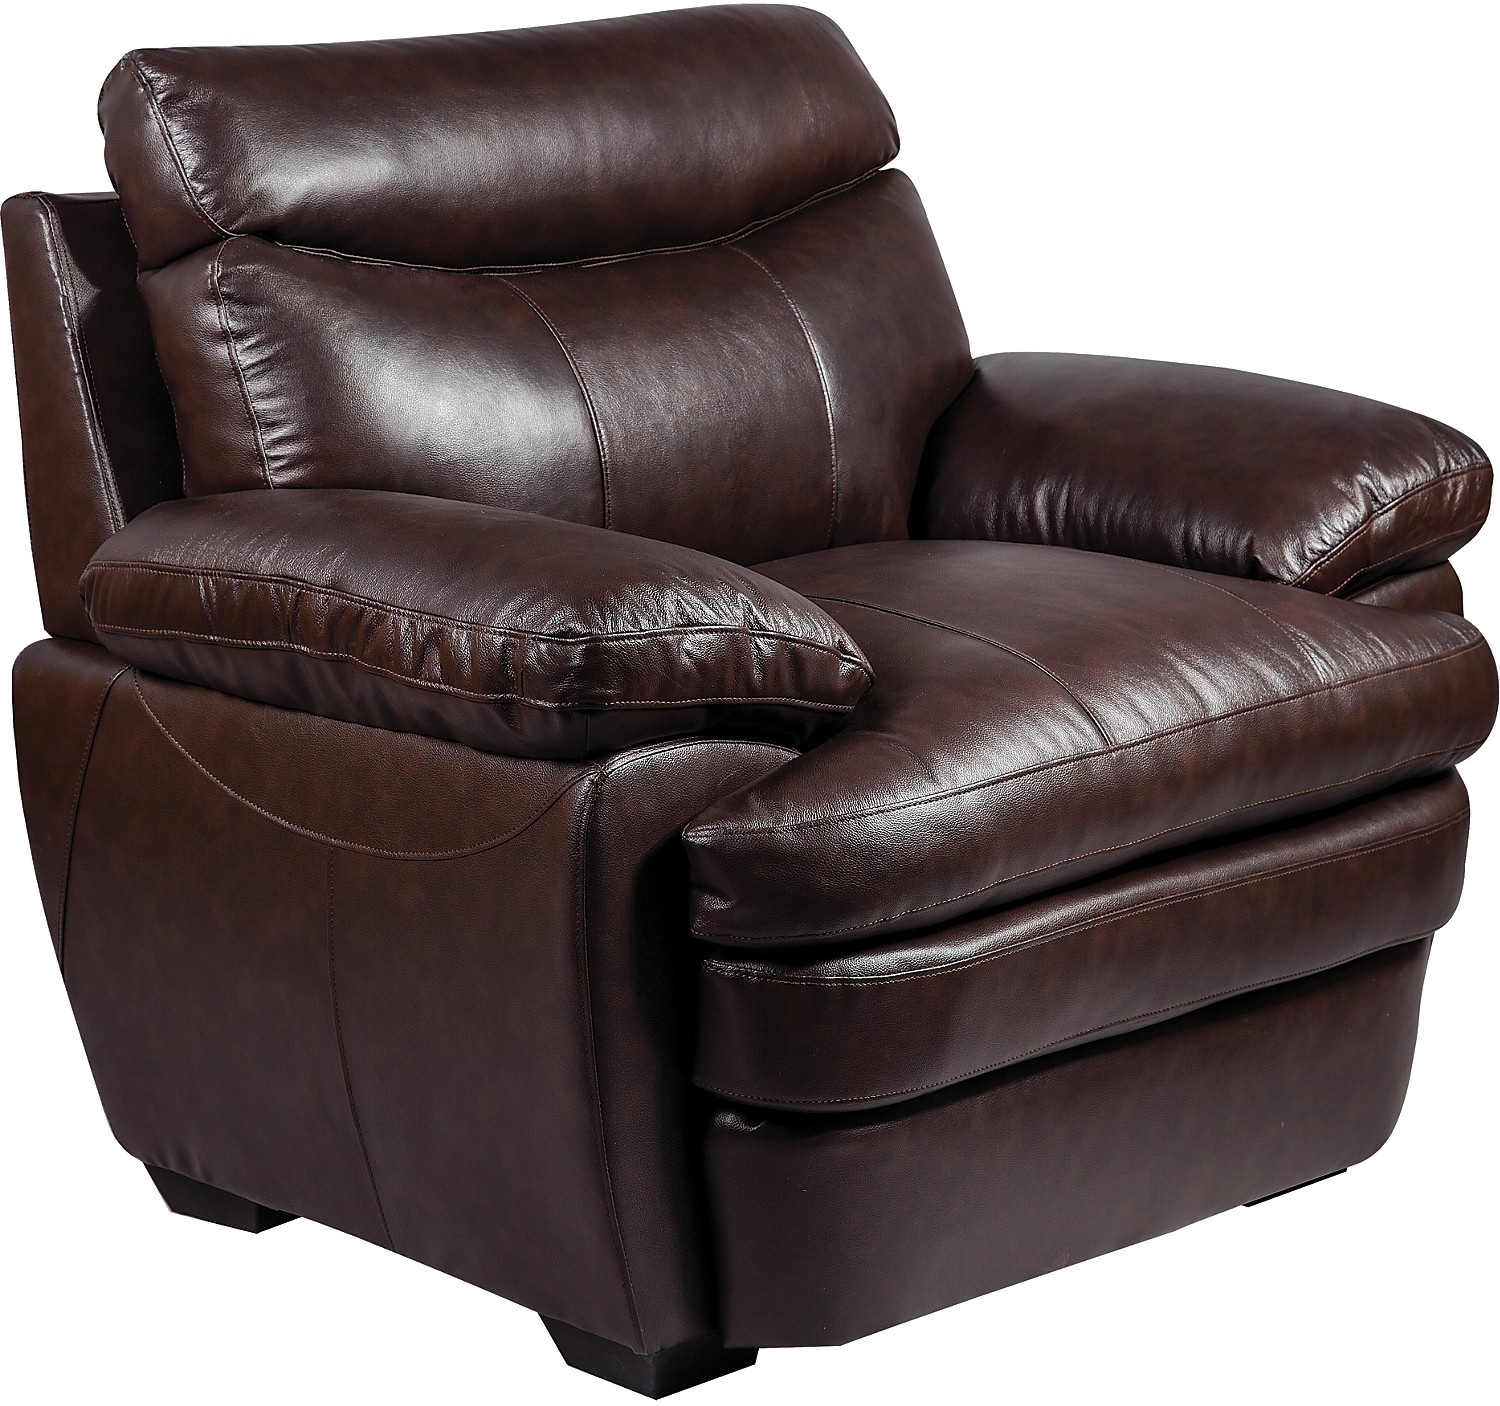 Living Room Furniture - Marty Genuine Leather Chair - Brown